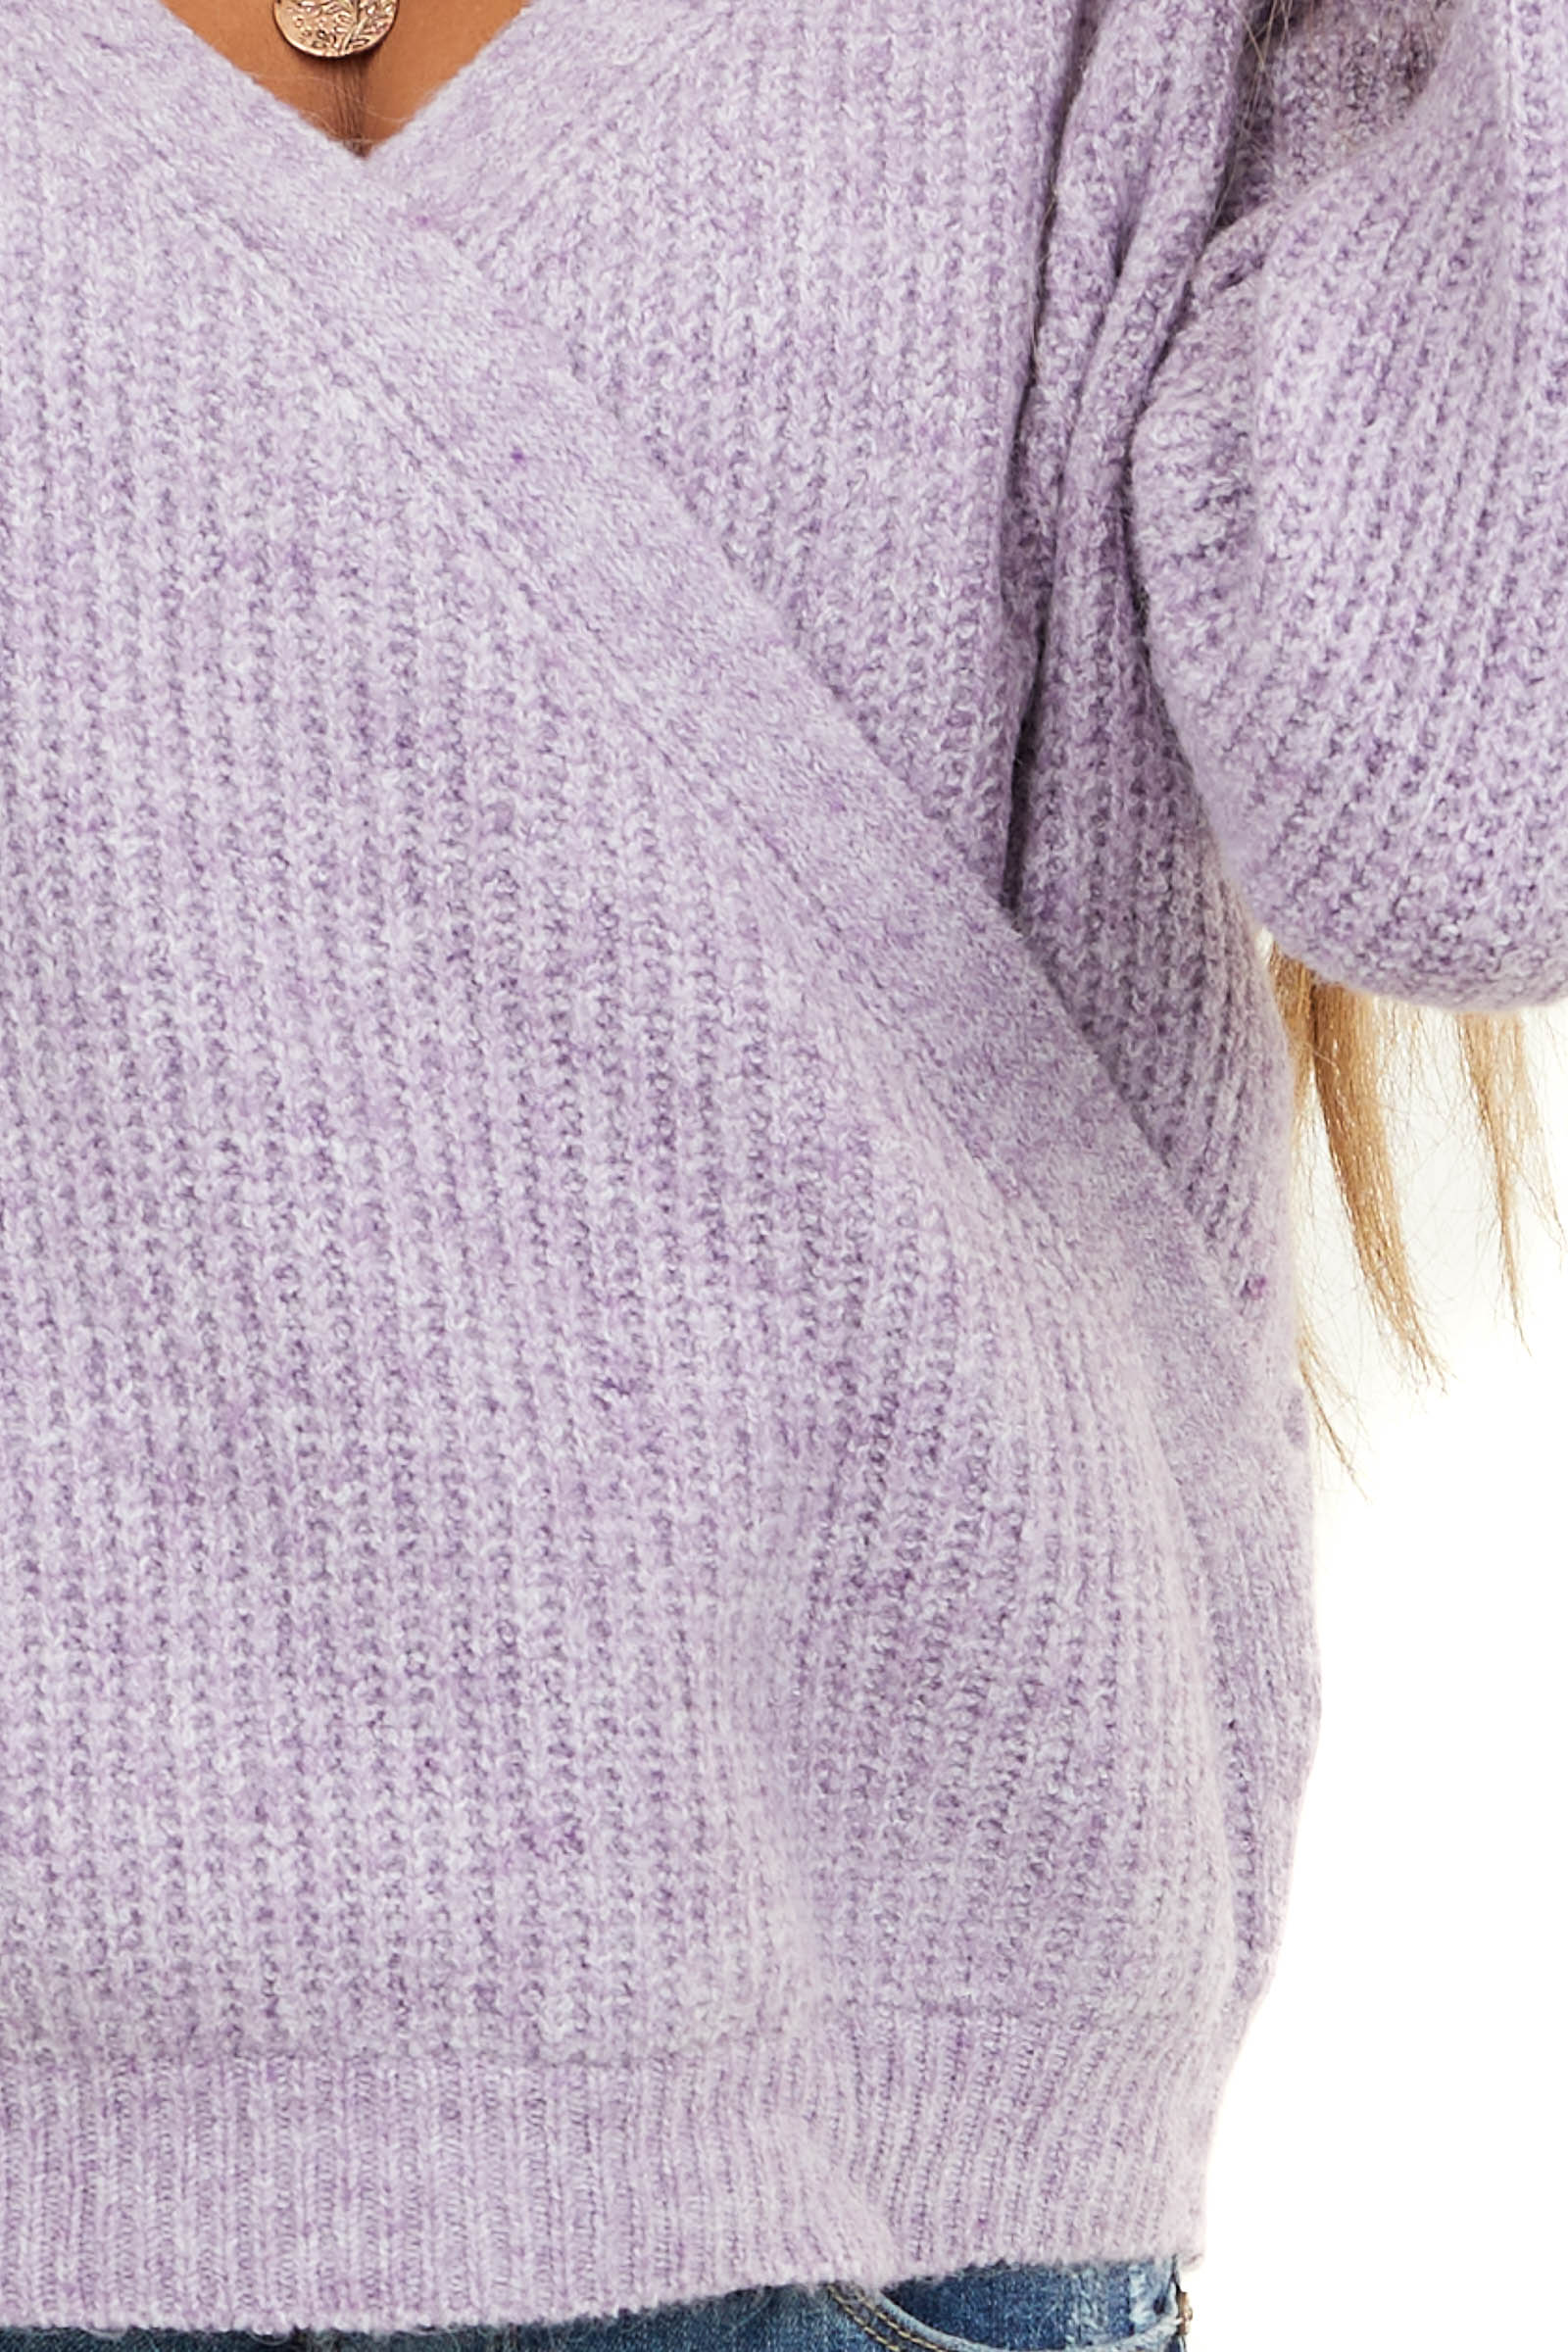 Lavender Surplice Cropped Sweater Top with Deep V Neckline